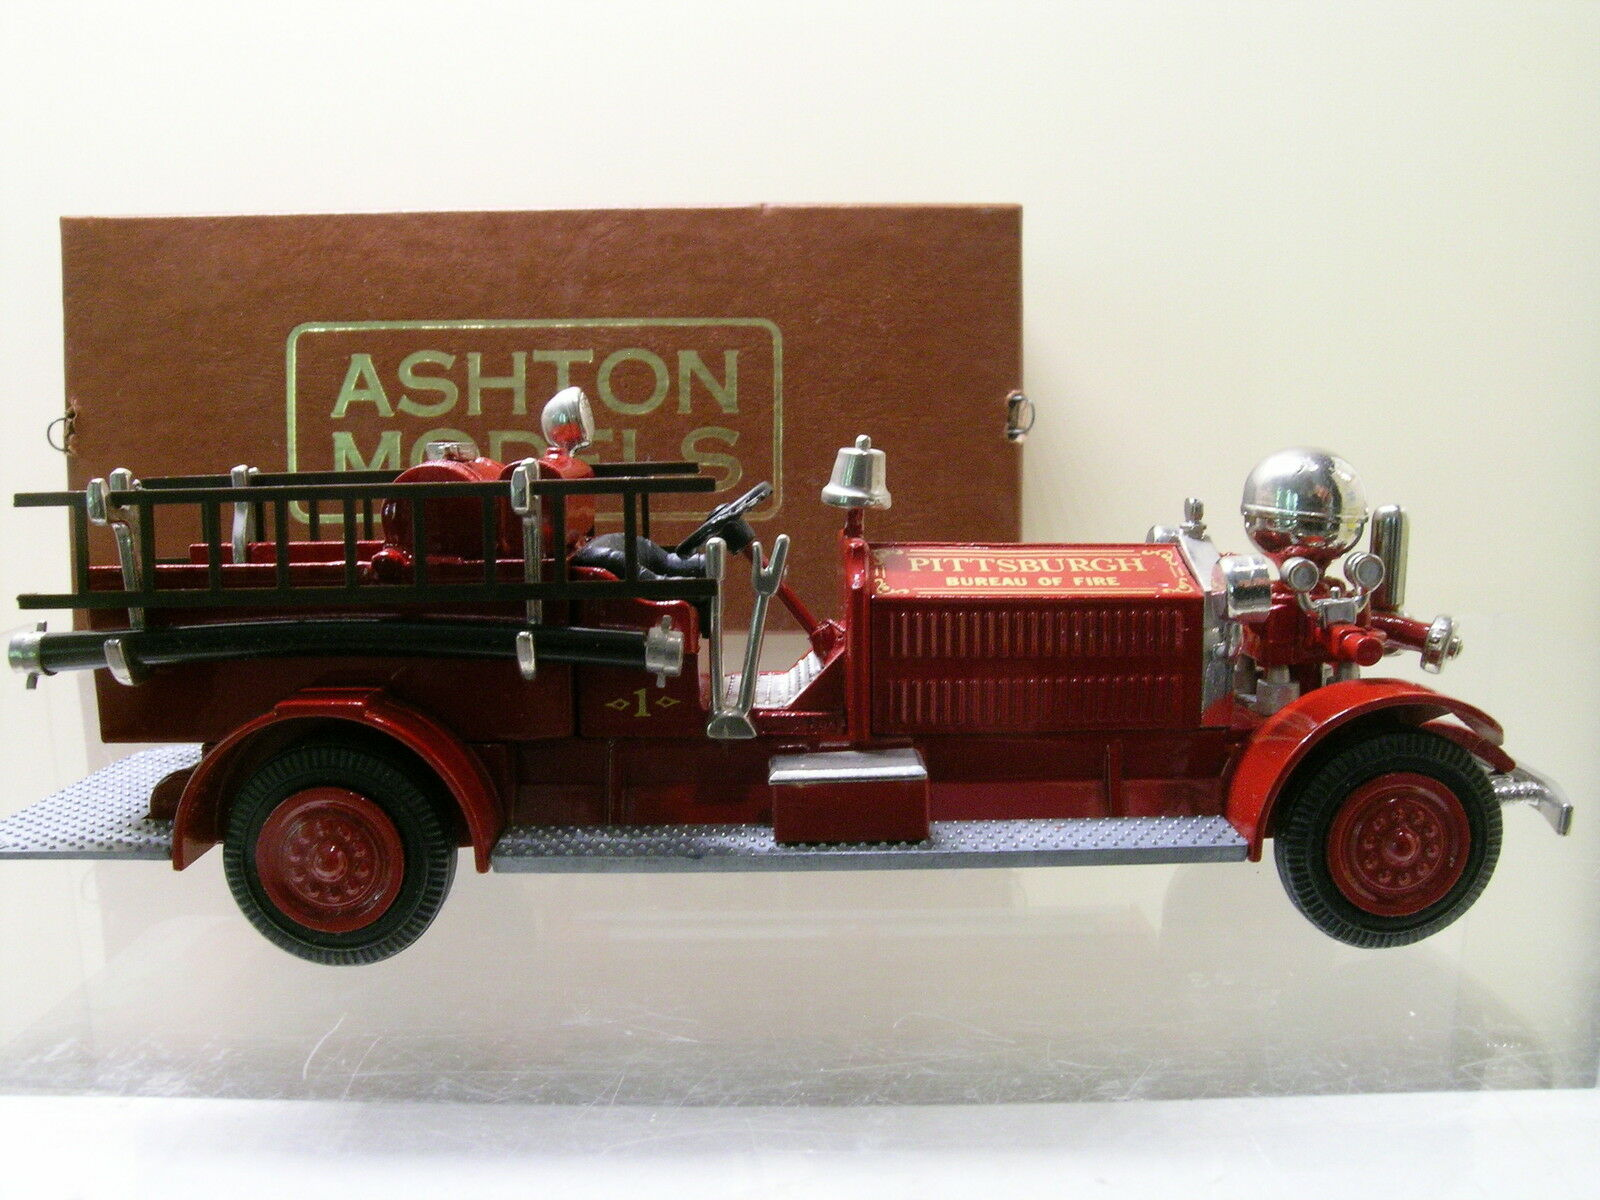 ASHTON MODELS AH7 AHRENS FOX NS4 FIRE PUMPER PITTSBURGH RED RED RED 1923 BOXED  1 43 78e7af